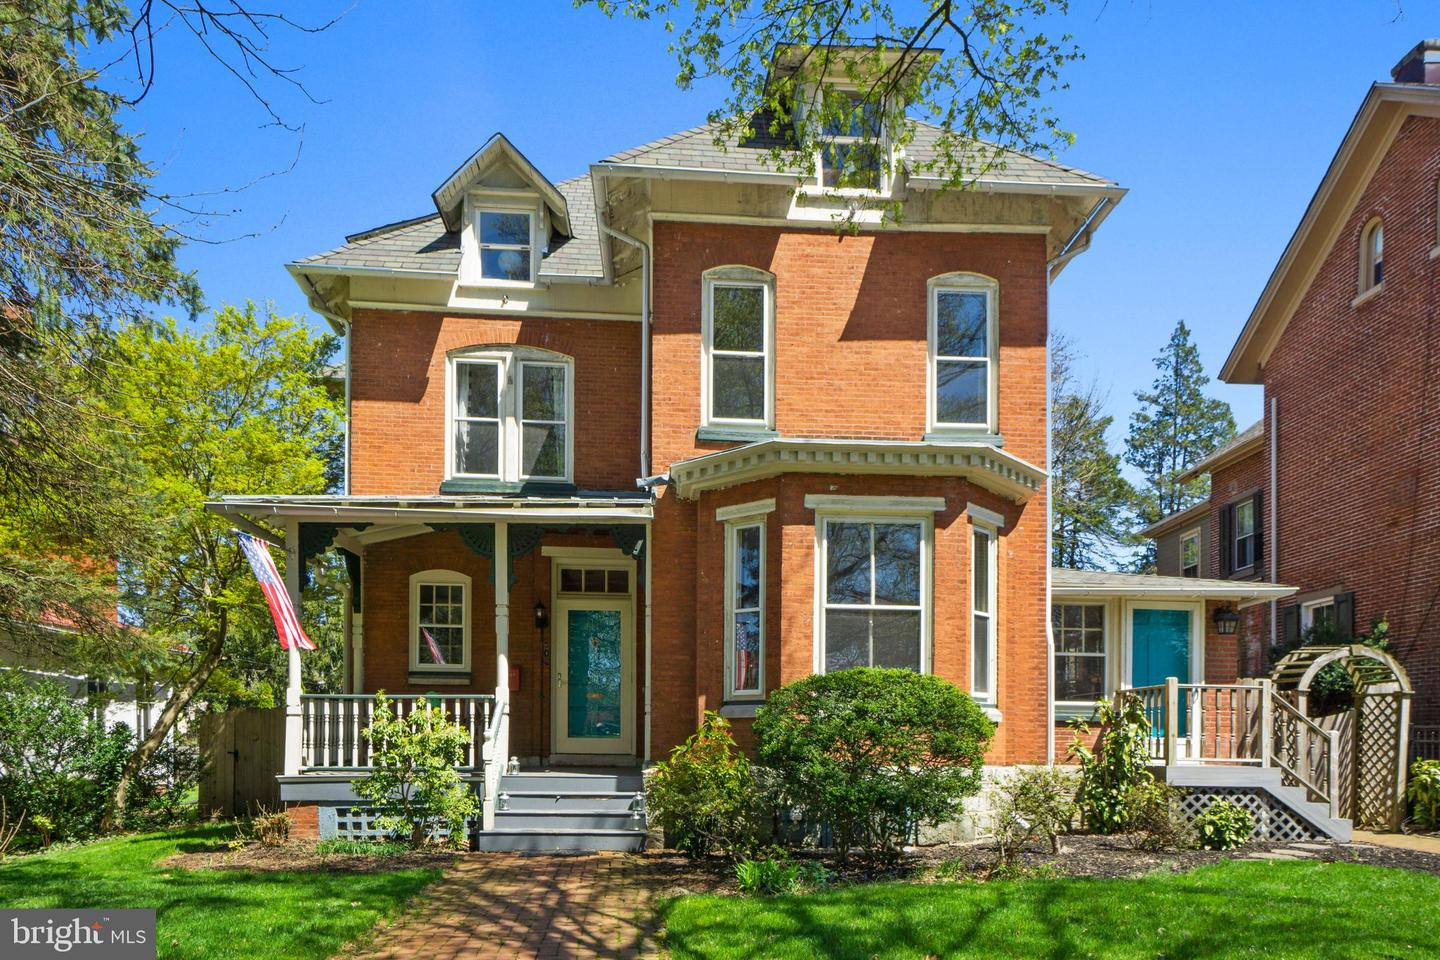 507 N High Street West Chester, PA 19380